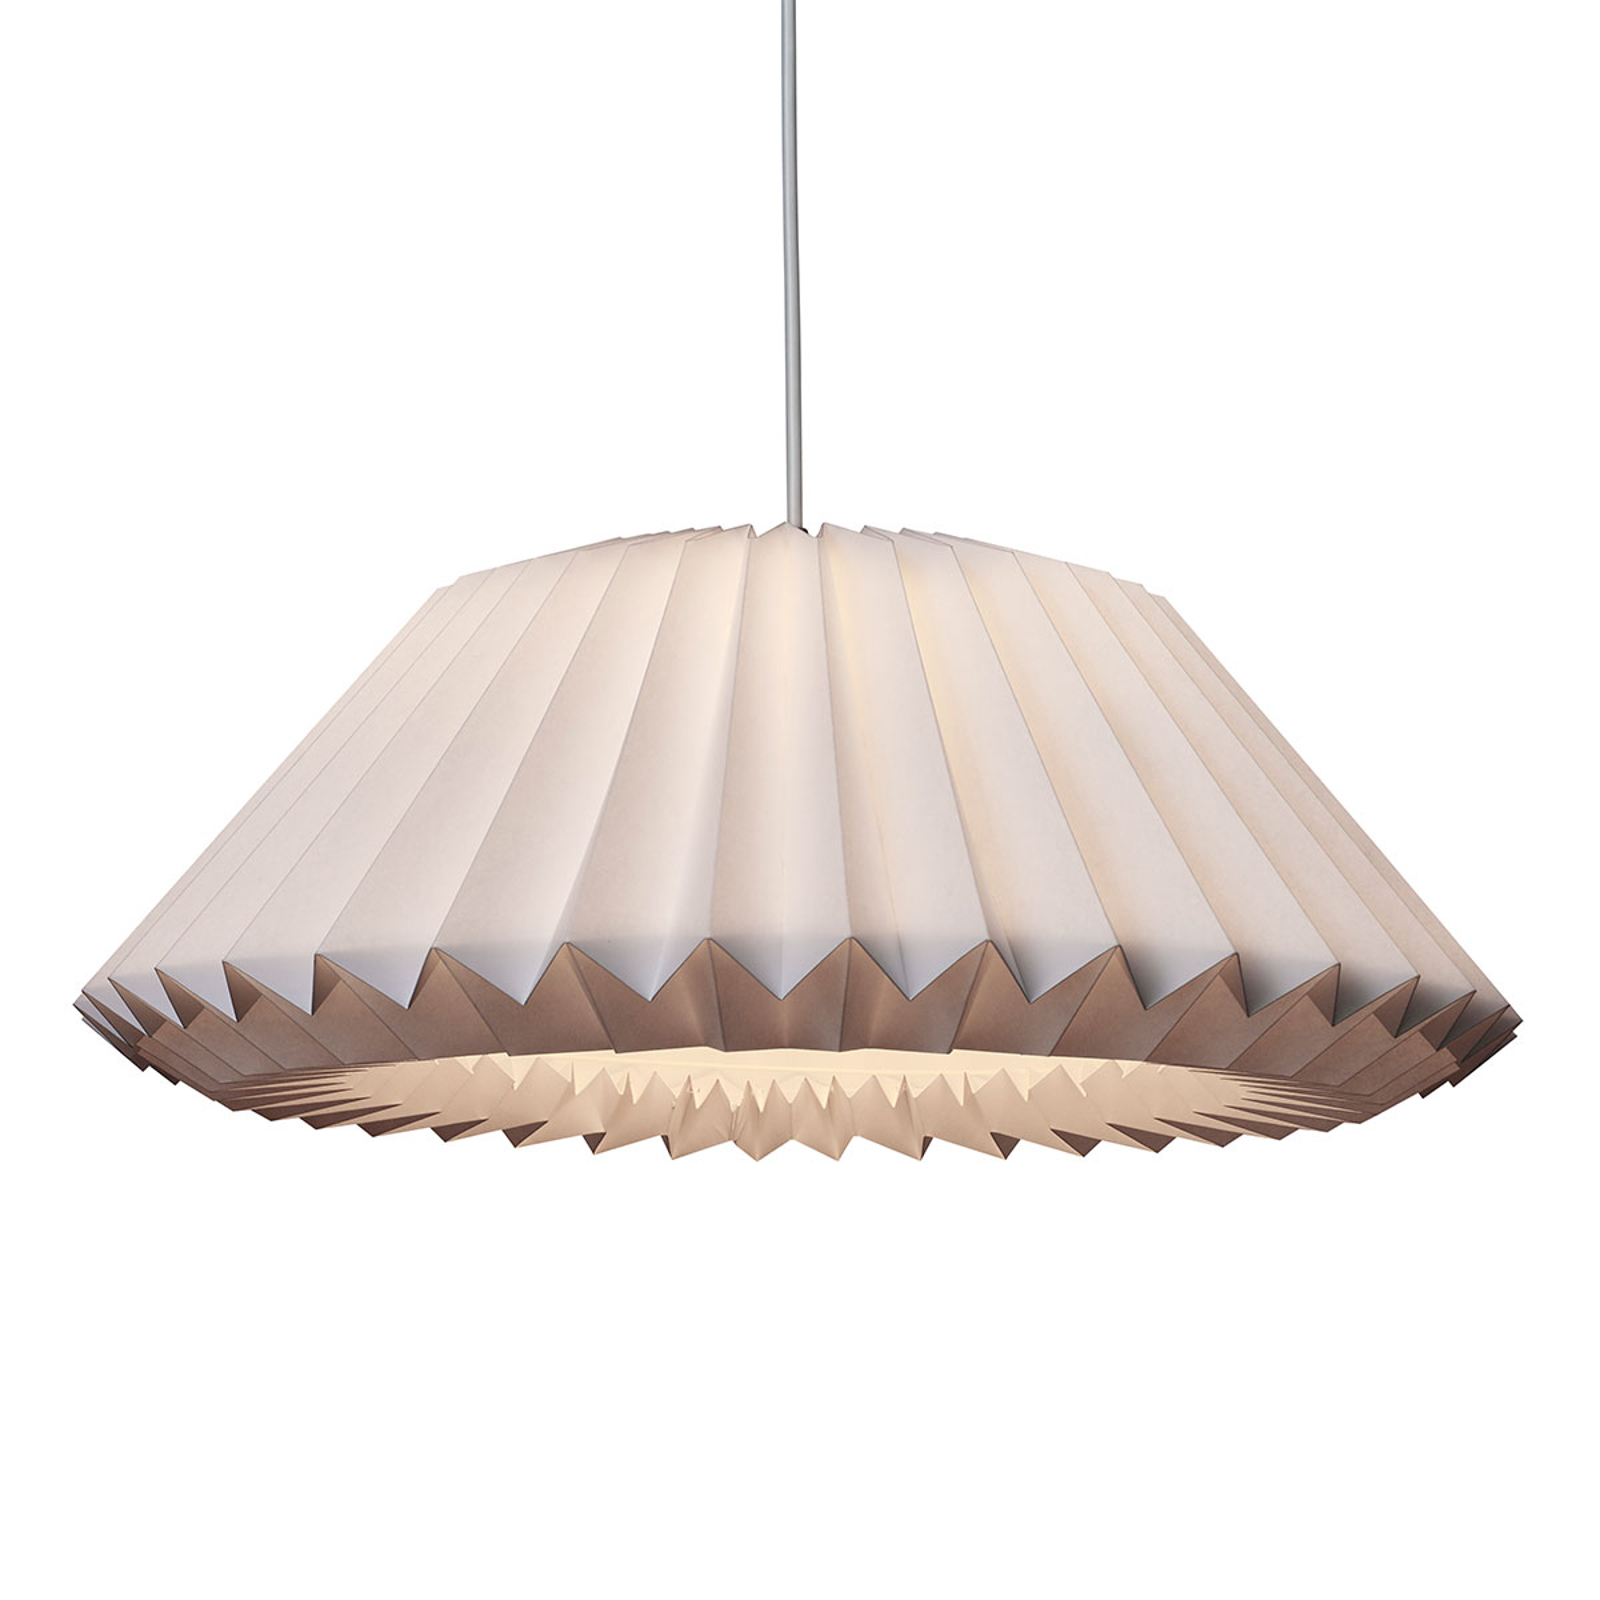 LE KLINT Megatwo hanglamp in Wit, large